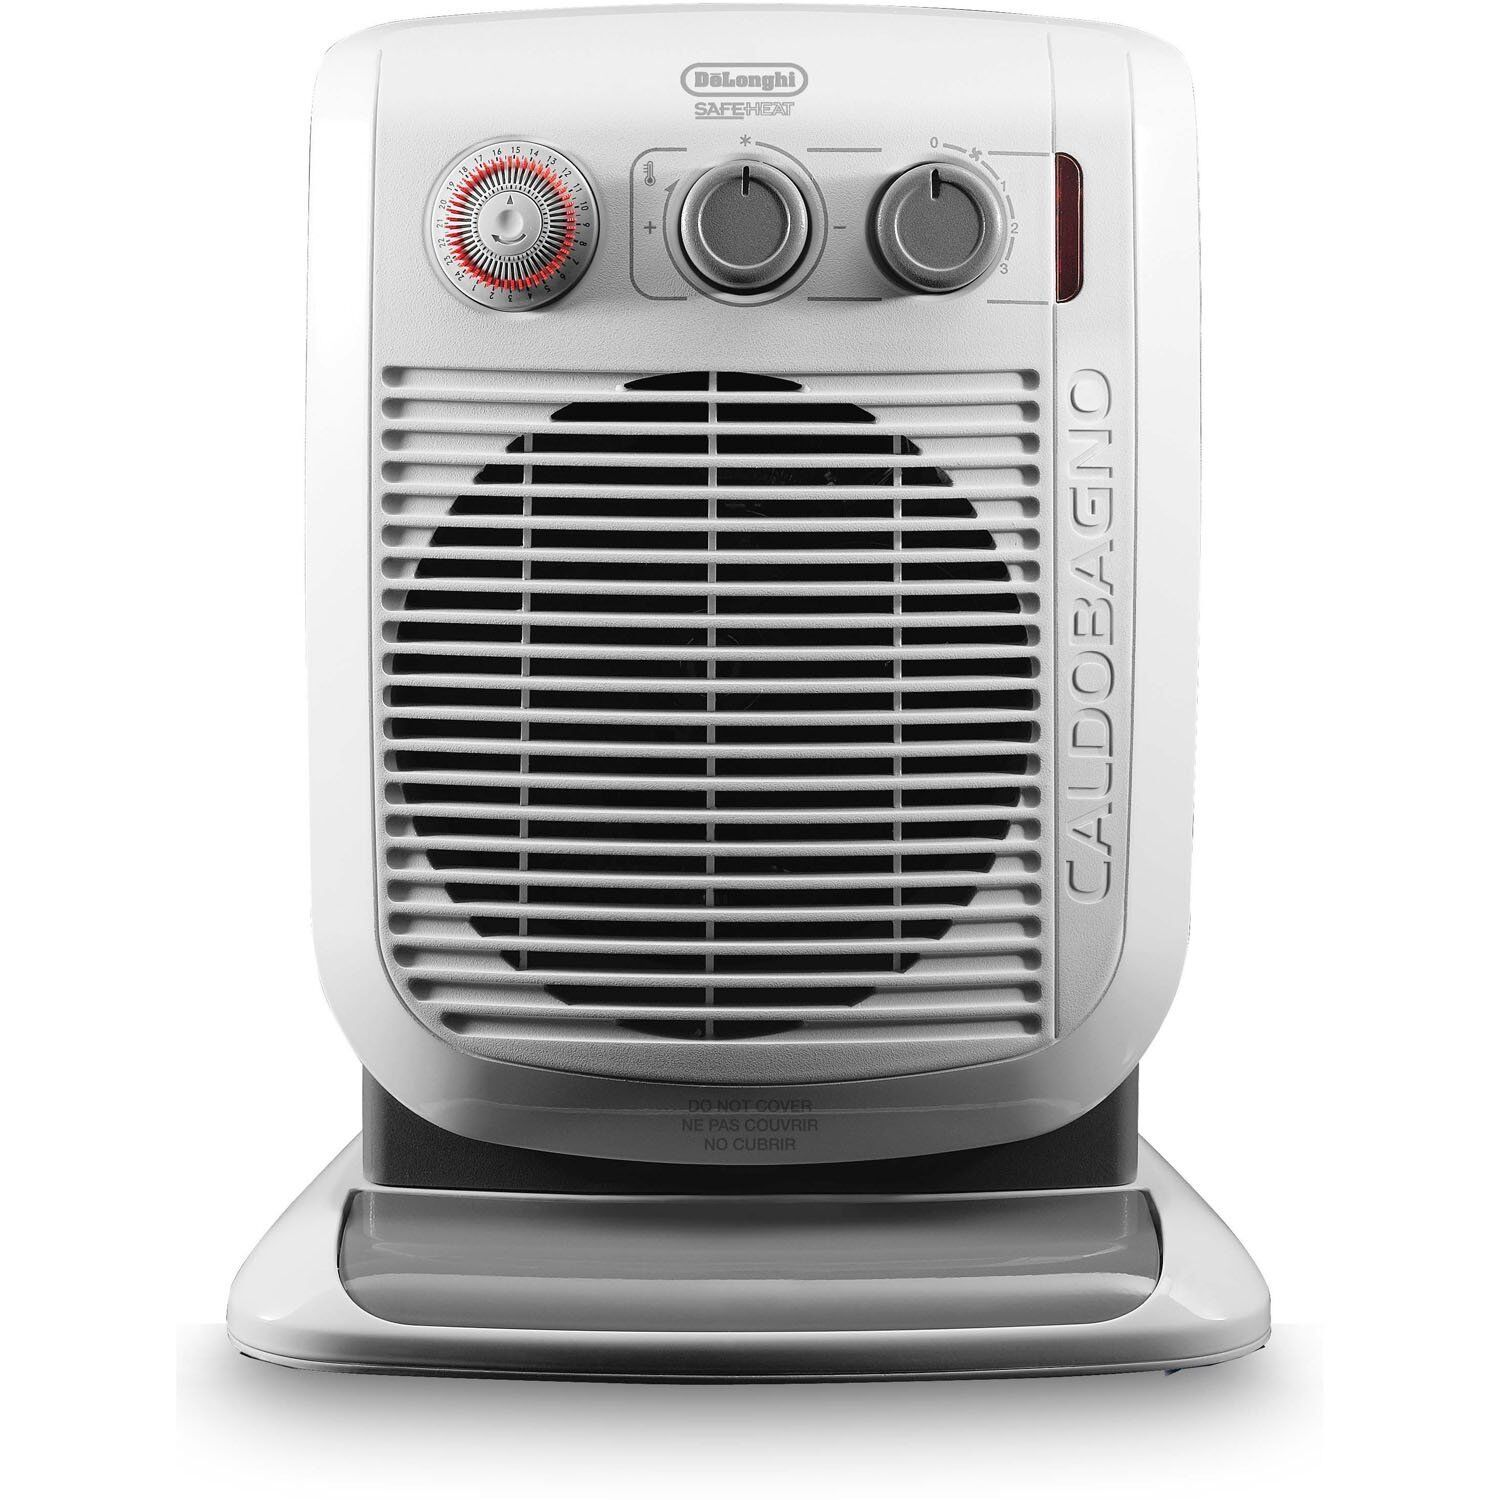 Space Heaters For Living Room: DeLonghi Caldobagno Bathroom Safe Portable Fan Space